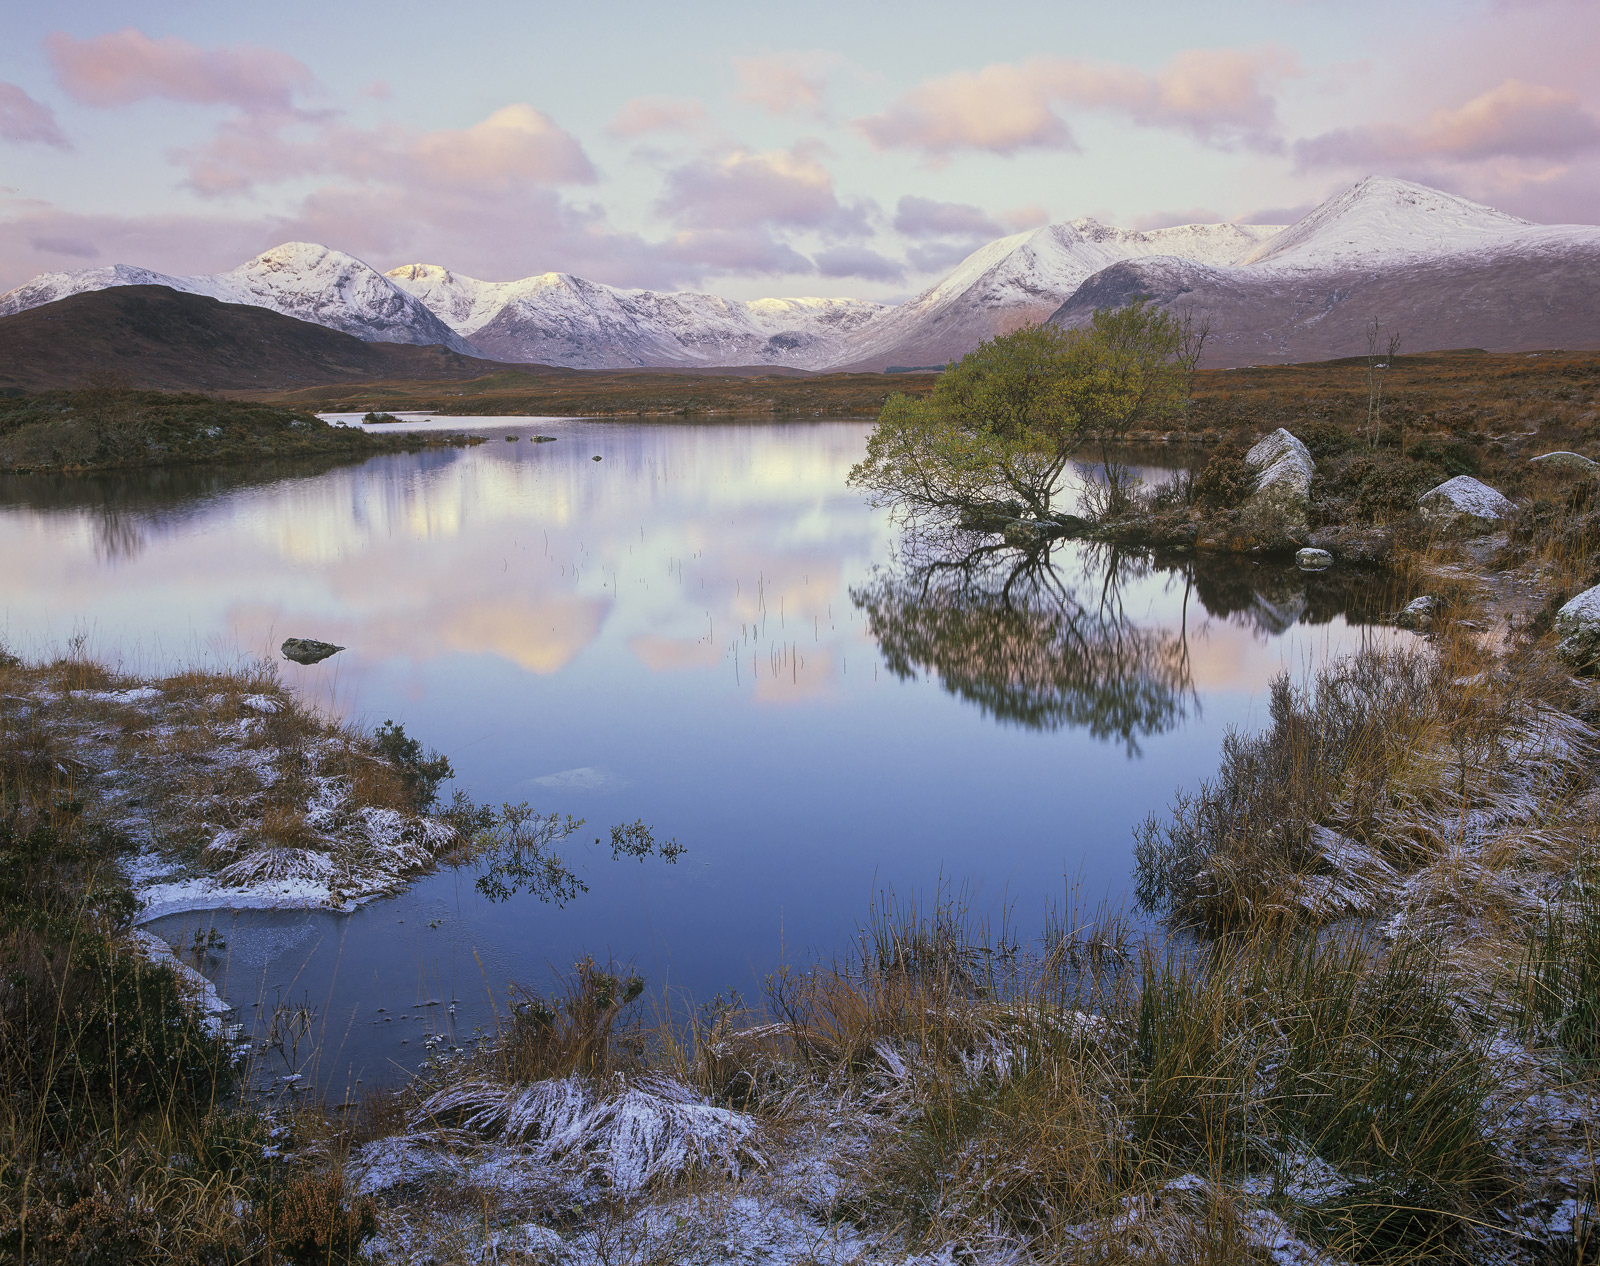 Frosted Candyfloss, Rannoch Moor, Glencoe, Scotland, freezing, morning, chilled, altitude, moorland, frosted, fringes, photo